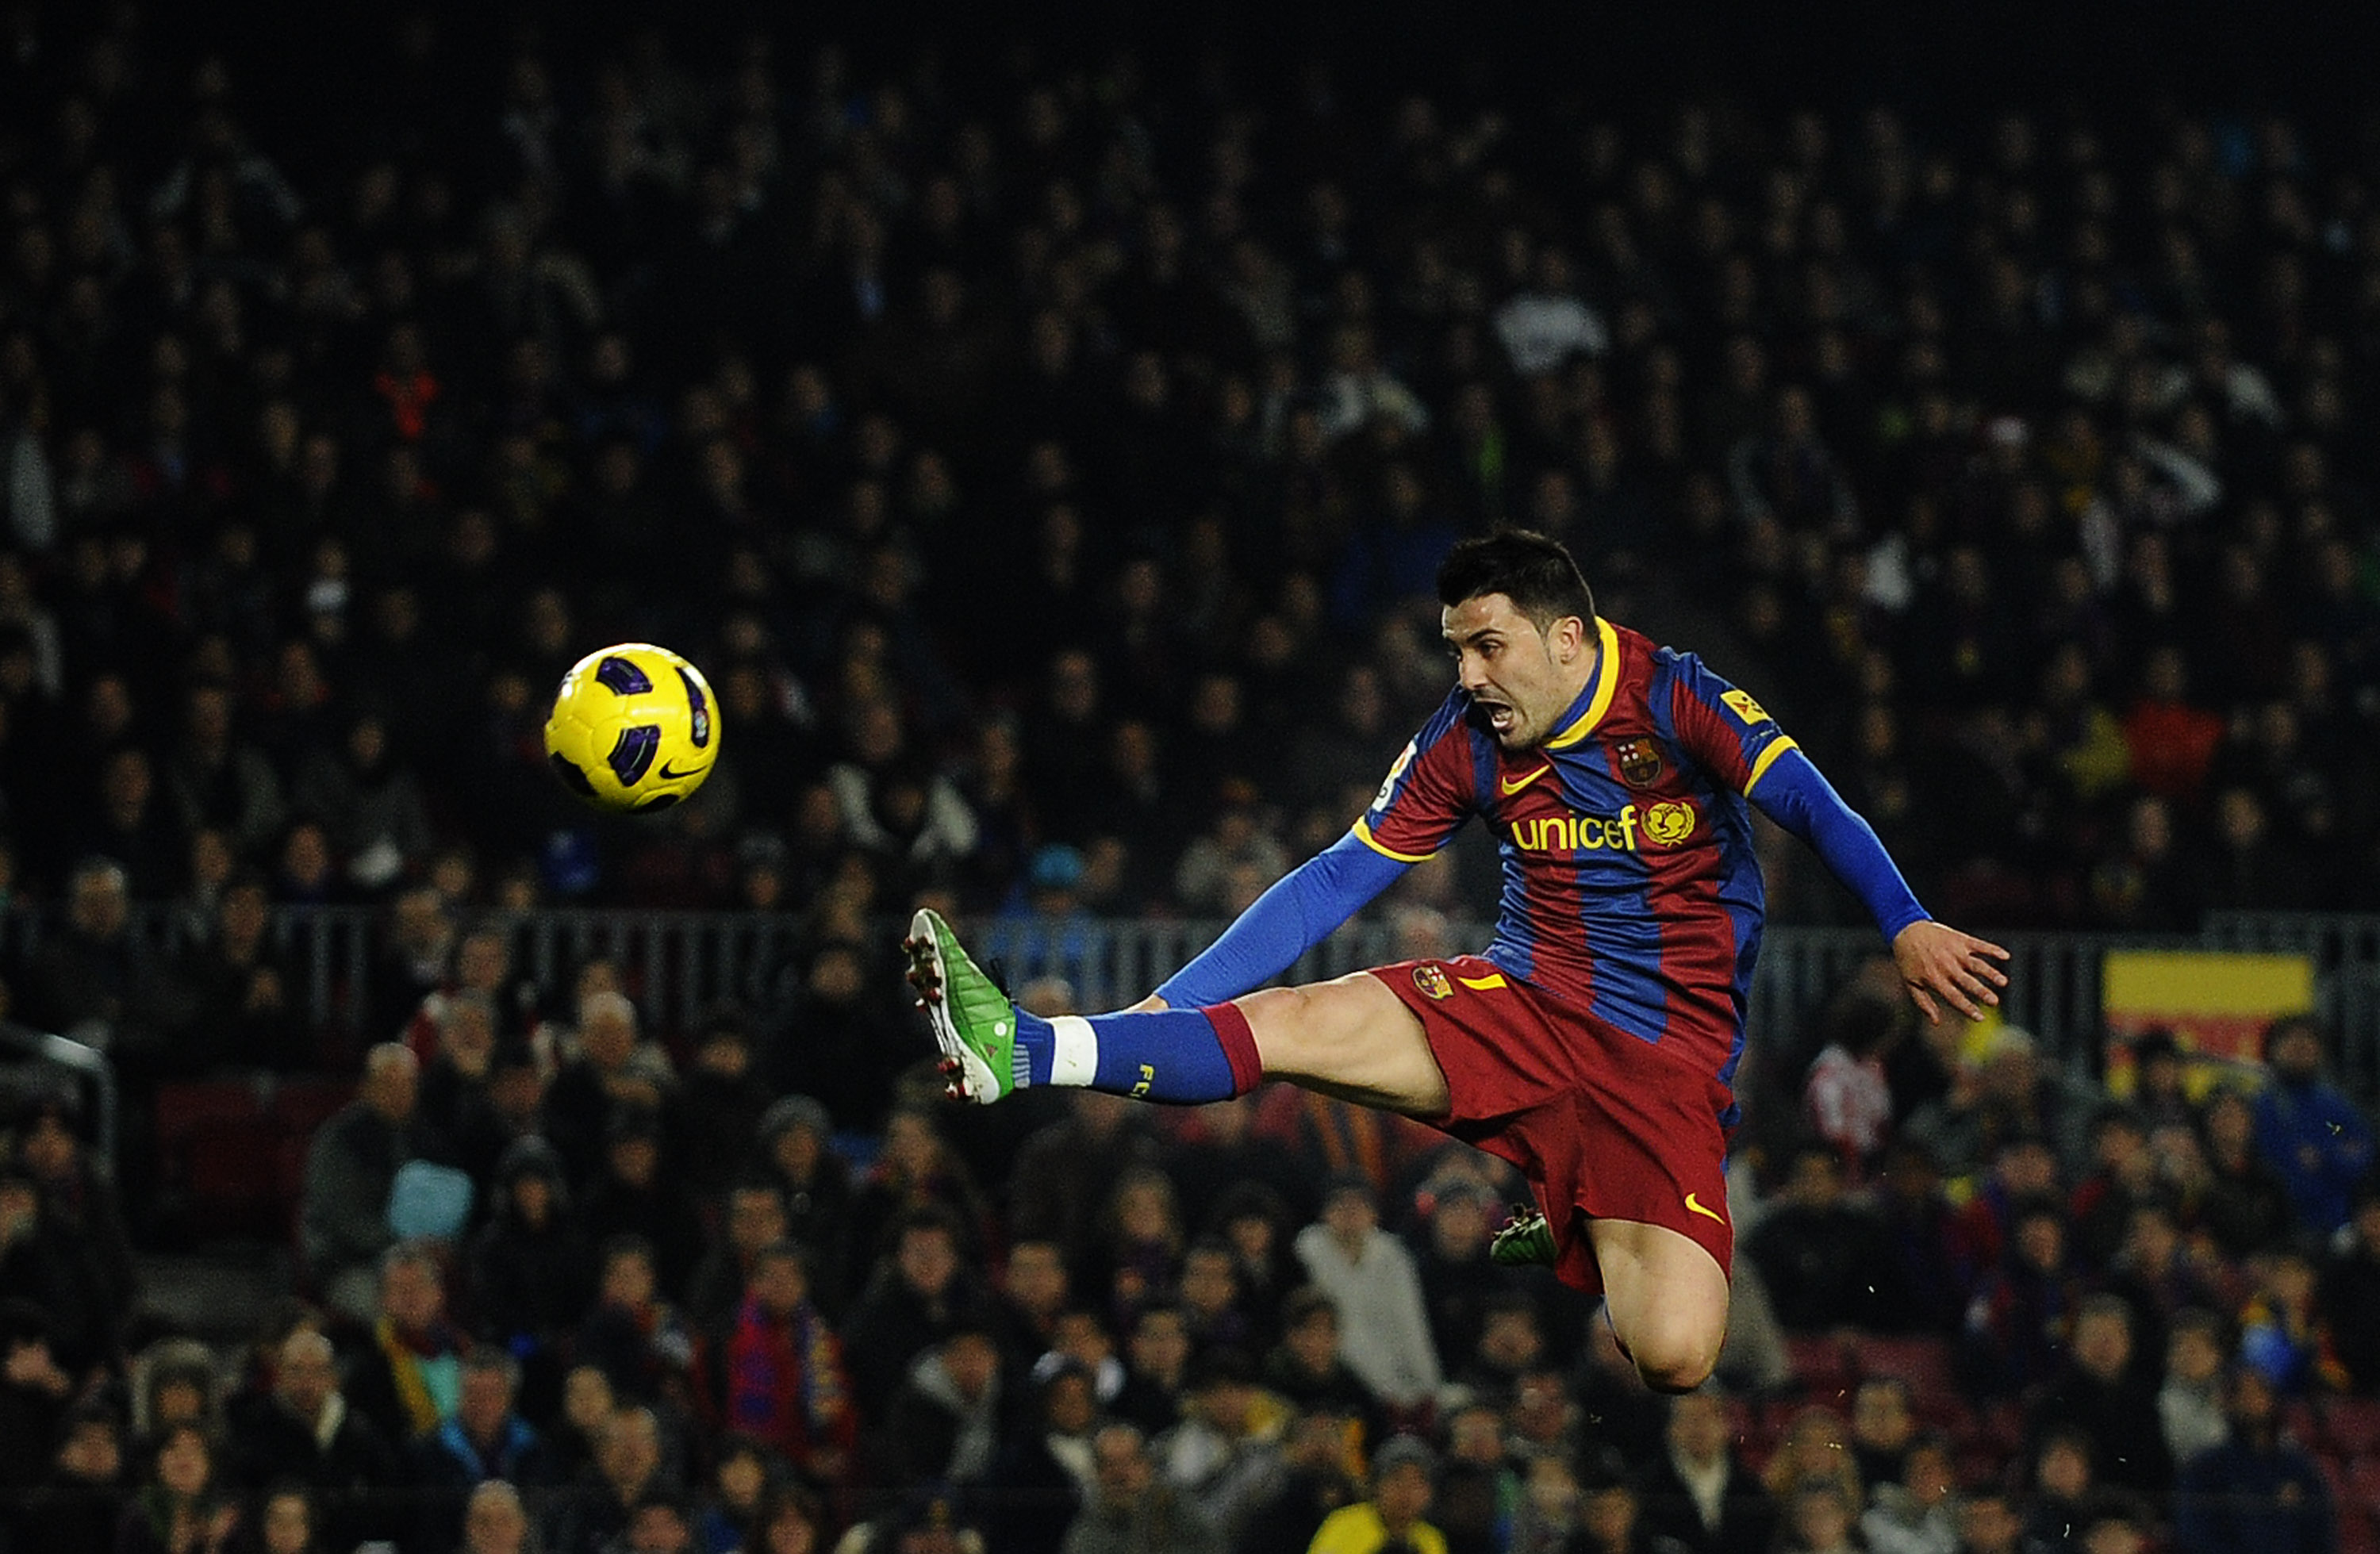 BARCELONA, SPAIN - DECEMBER 21:  David Villa of FC Barcelona jumps to control the ball during the round of last 16 Copa del Rey match between FC Barcelona and Athletic Bilbao at Camp Nou on December 21, 2010 in Barcelona, Spain. The match ended 0-0.  (Pho